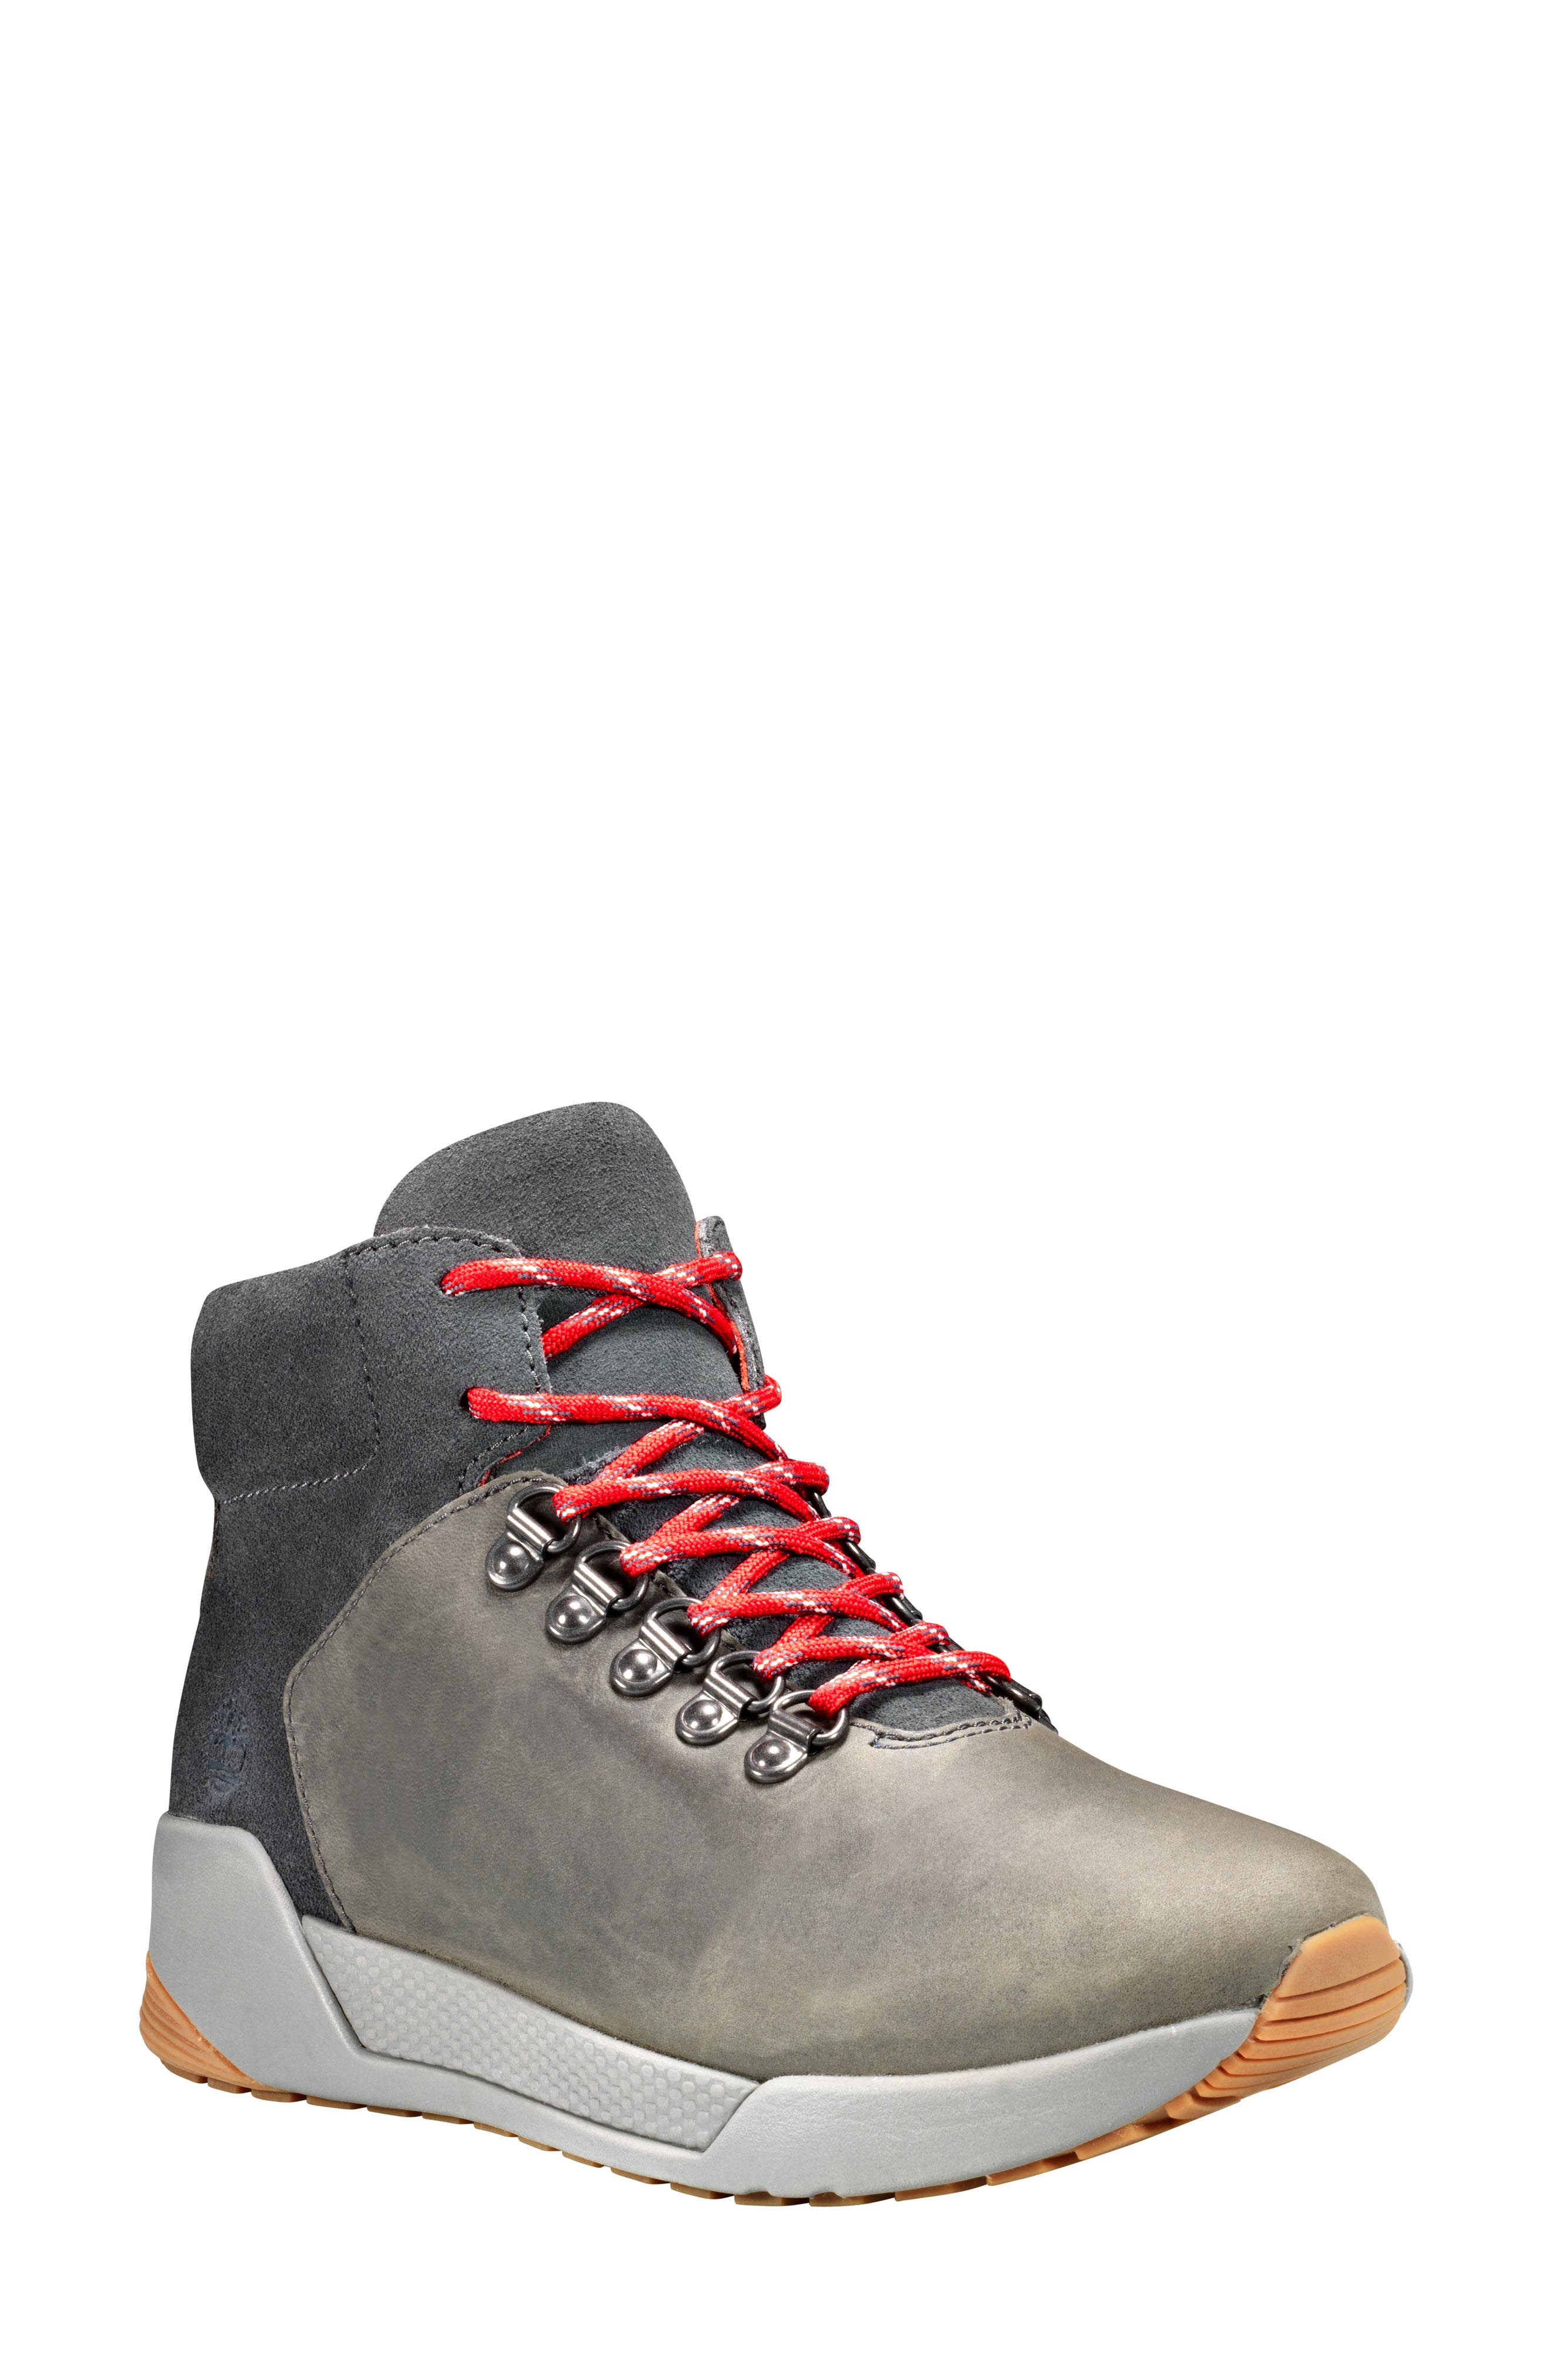 Timberland Kiri-Up Waterproof Hiking Boot- Grey